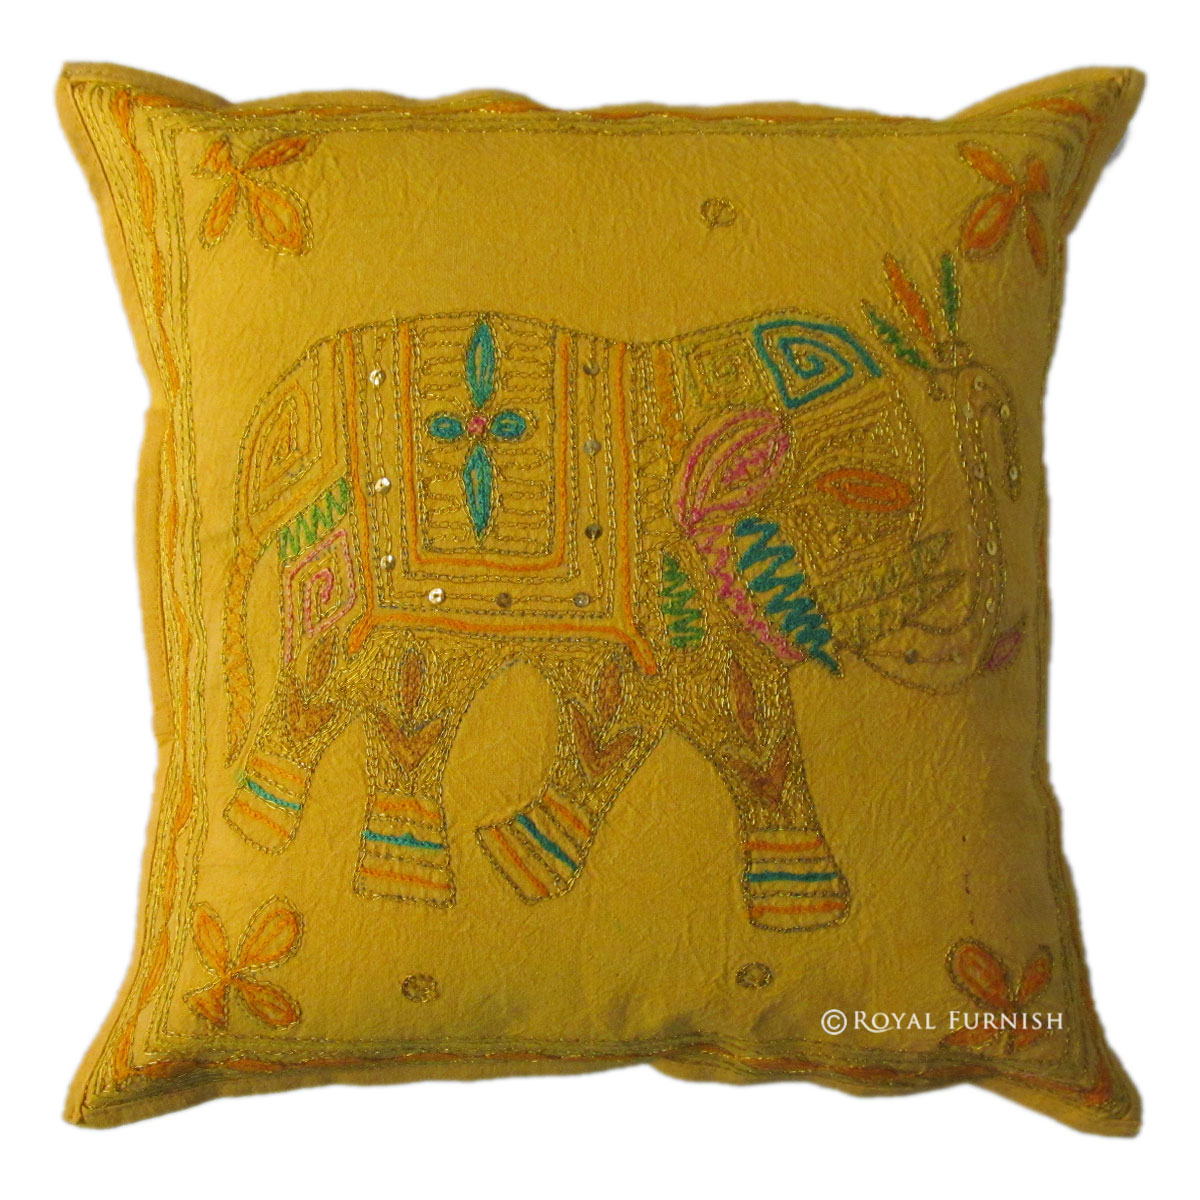 Yellow Embroidered Throw Pillows : Yellow Indian Handicraft Elephant Golden Embroidered Decorative Throw Pillow - RoyalFurnish.com